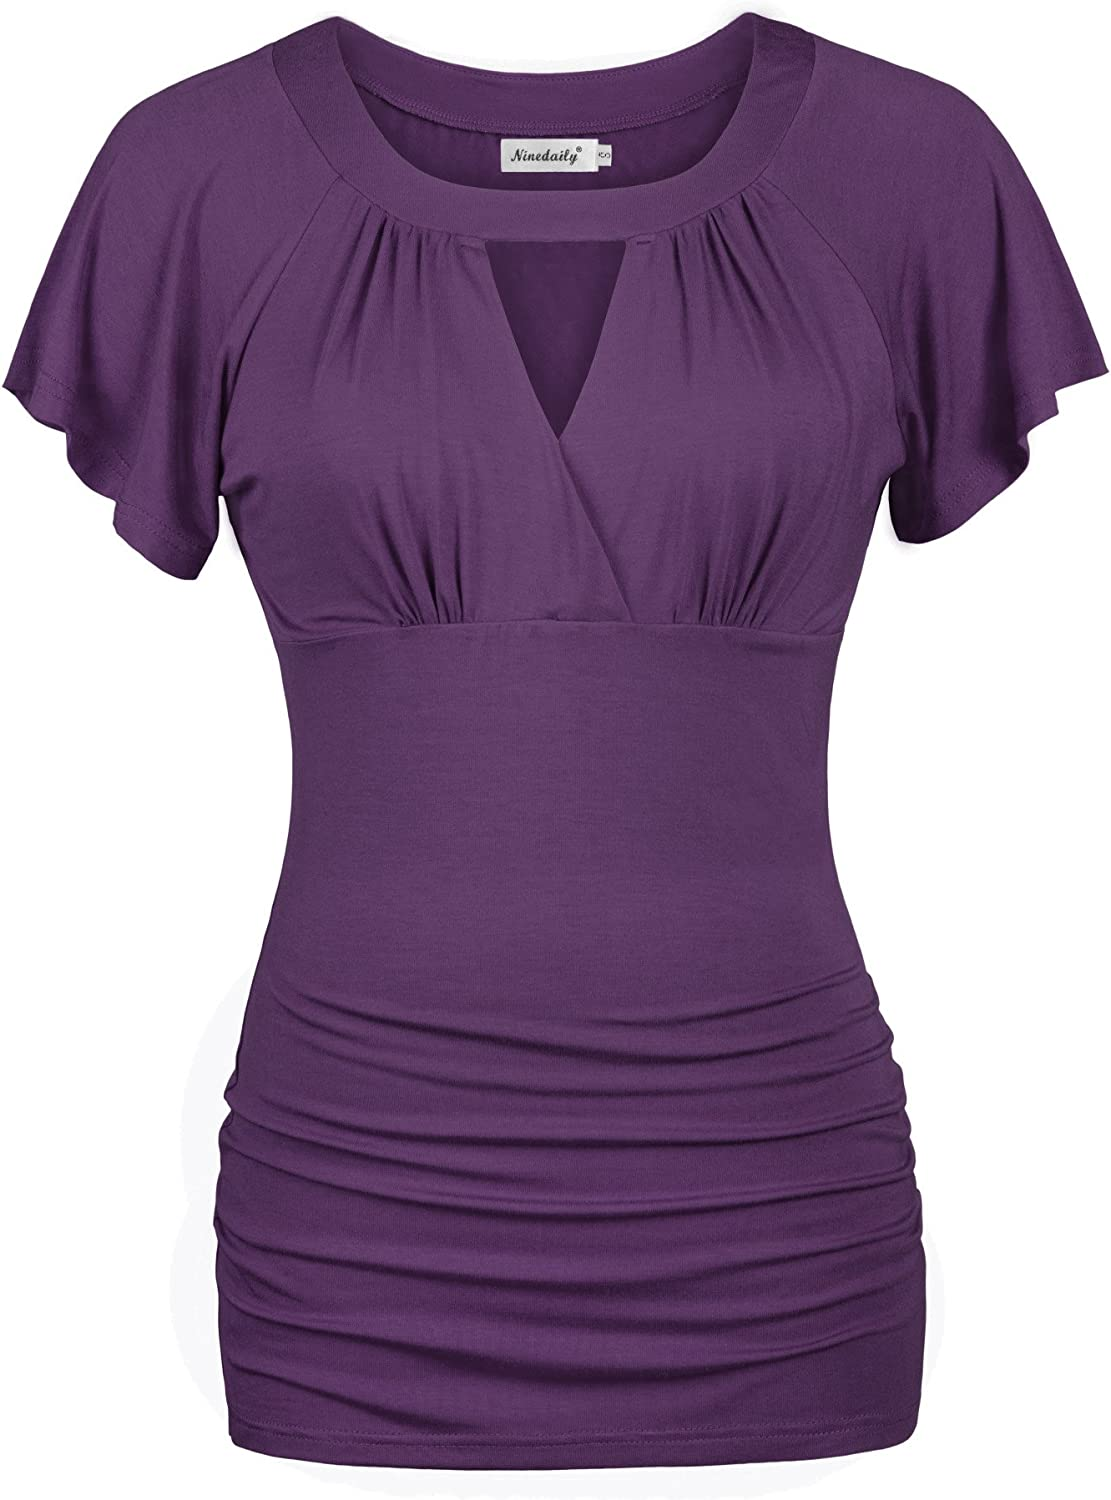 Ninedaily Women Dressy Tunic Tops Crossover V Neck Raglan Sleeve Ruched Blouse